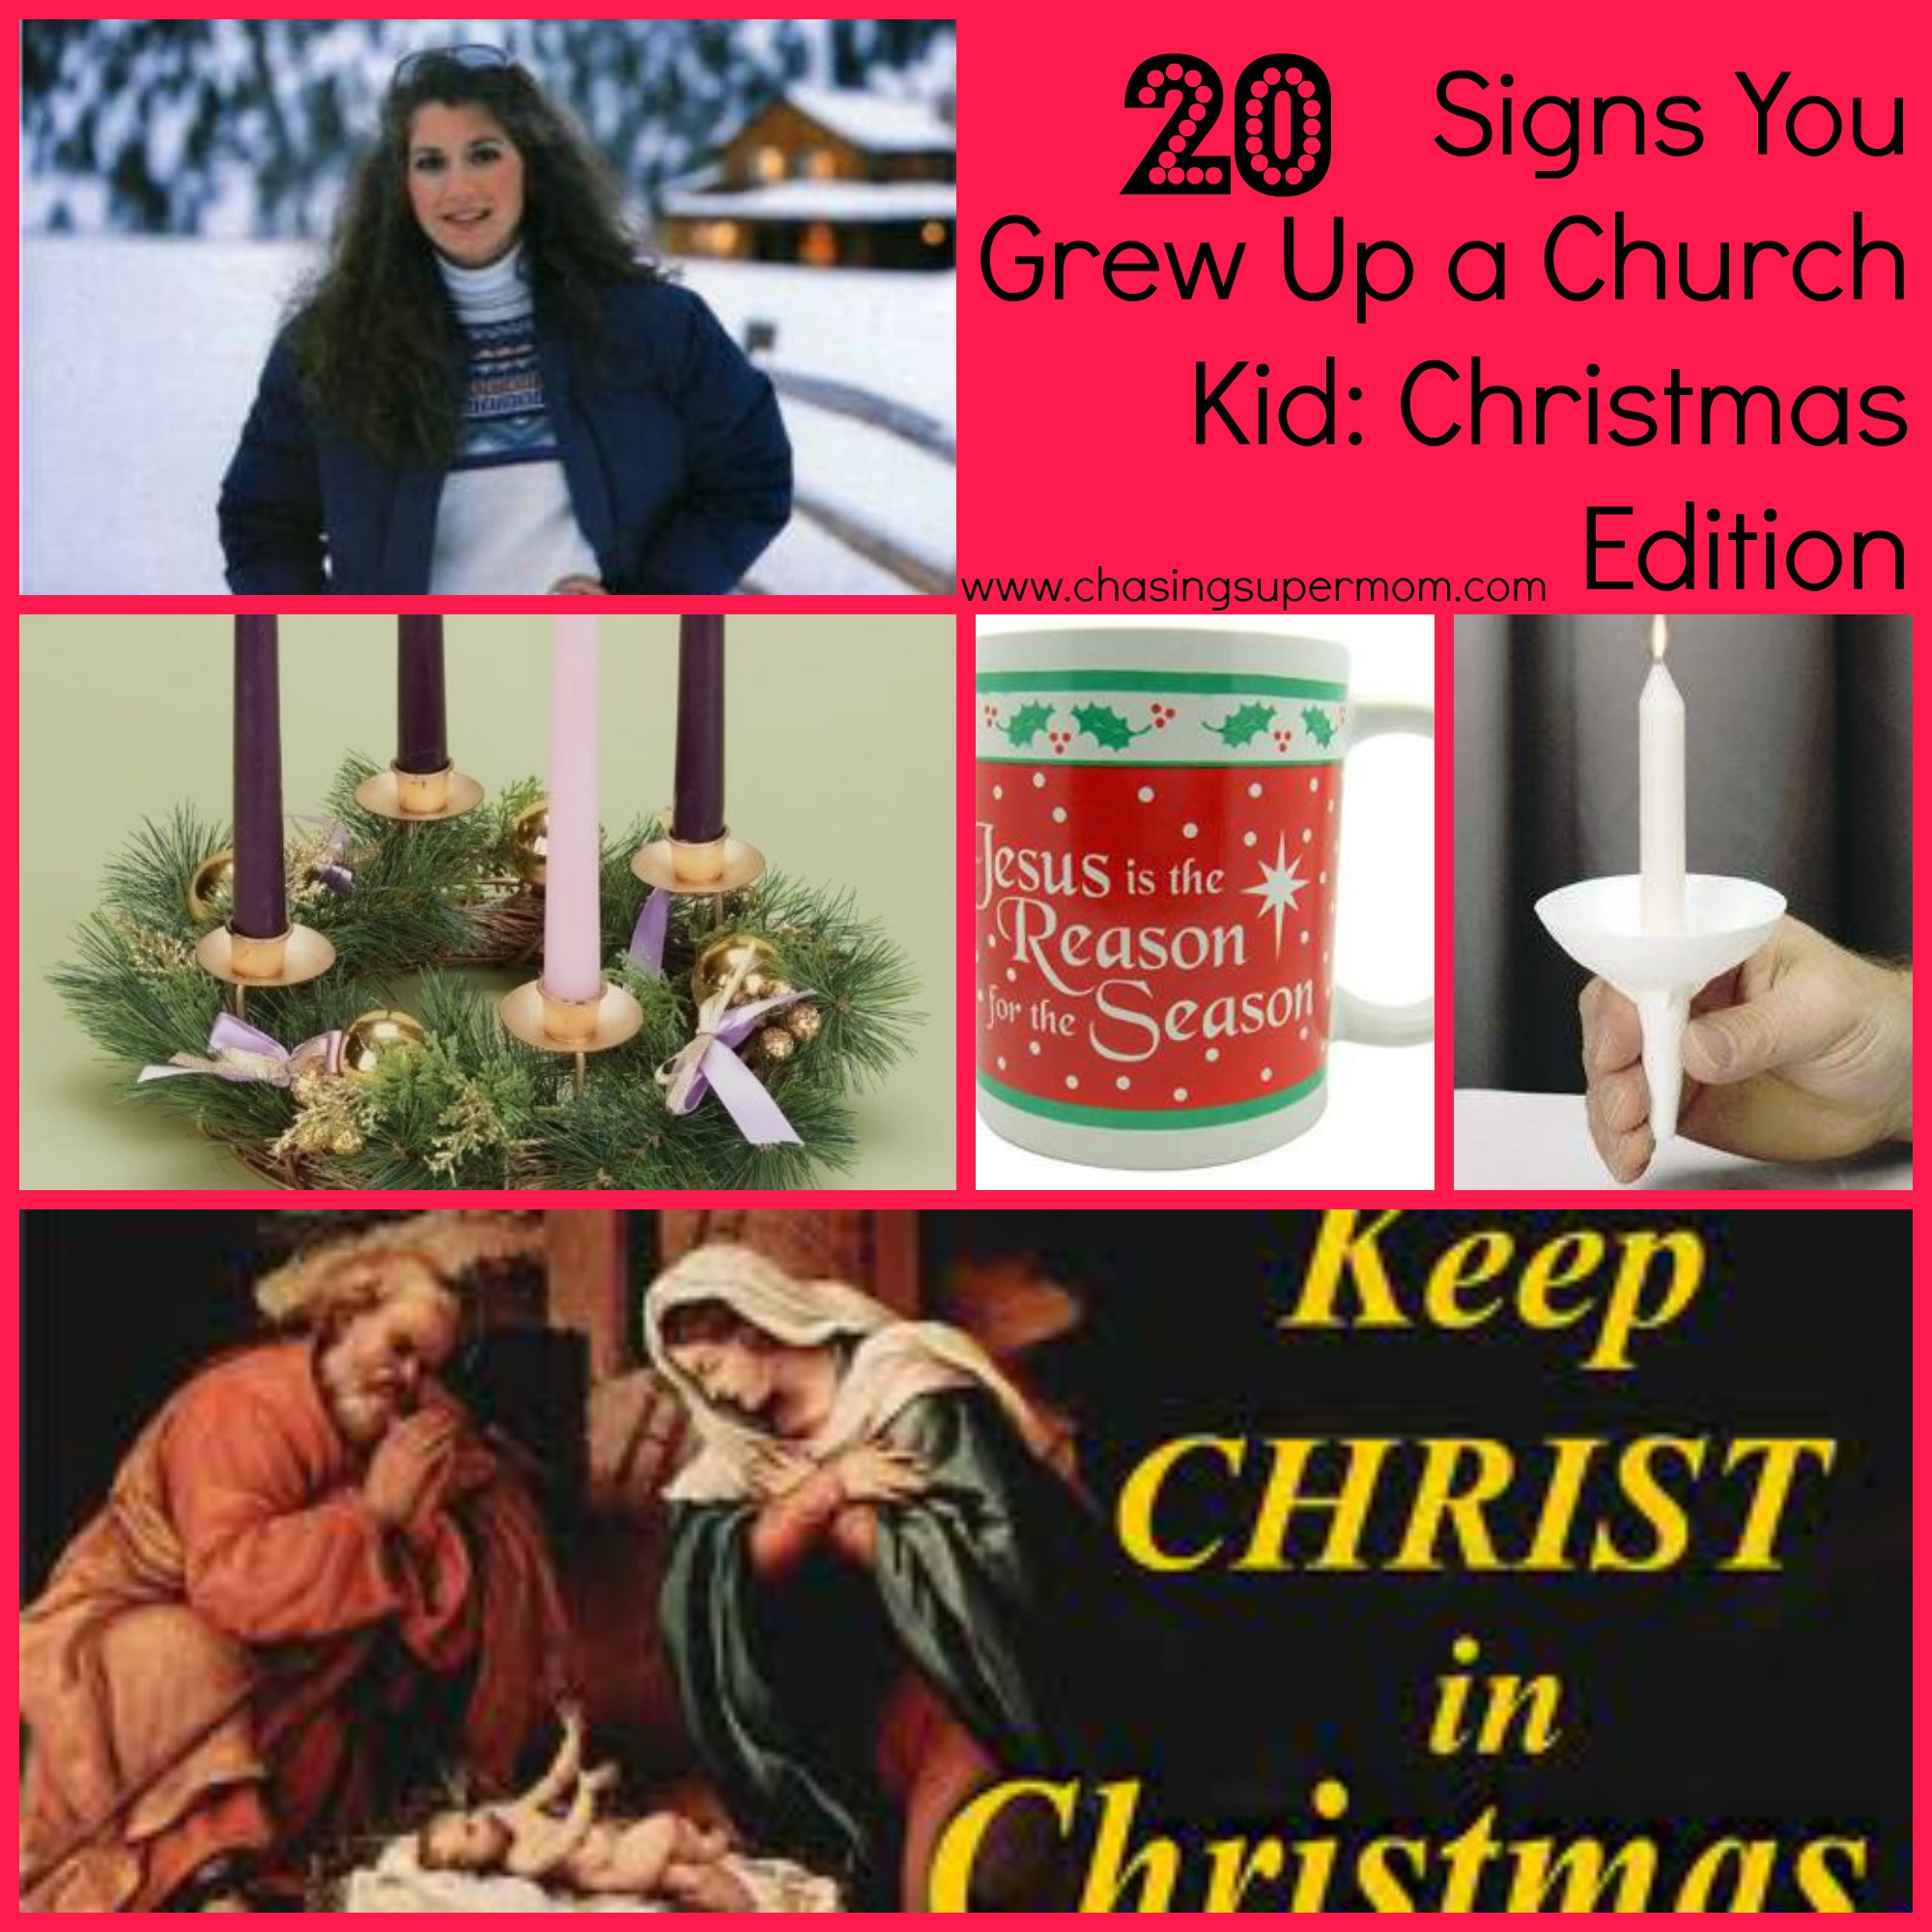 20 Signs You Grew Up a Church Kid – Christmas Edition